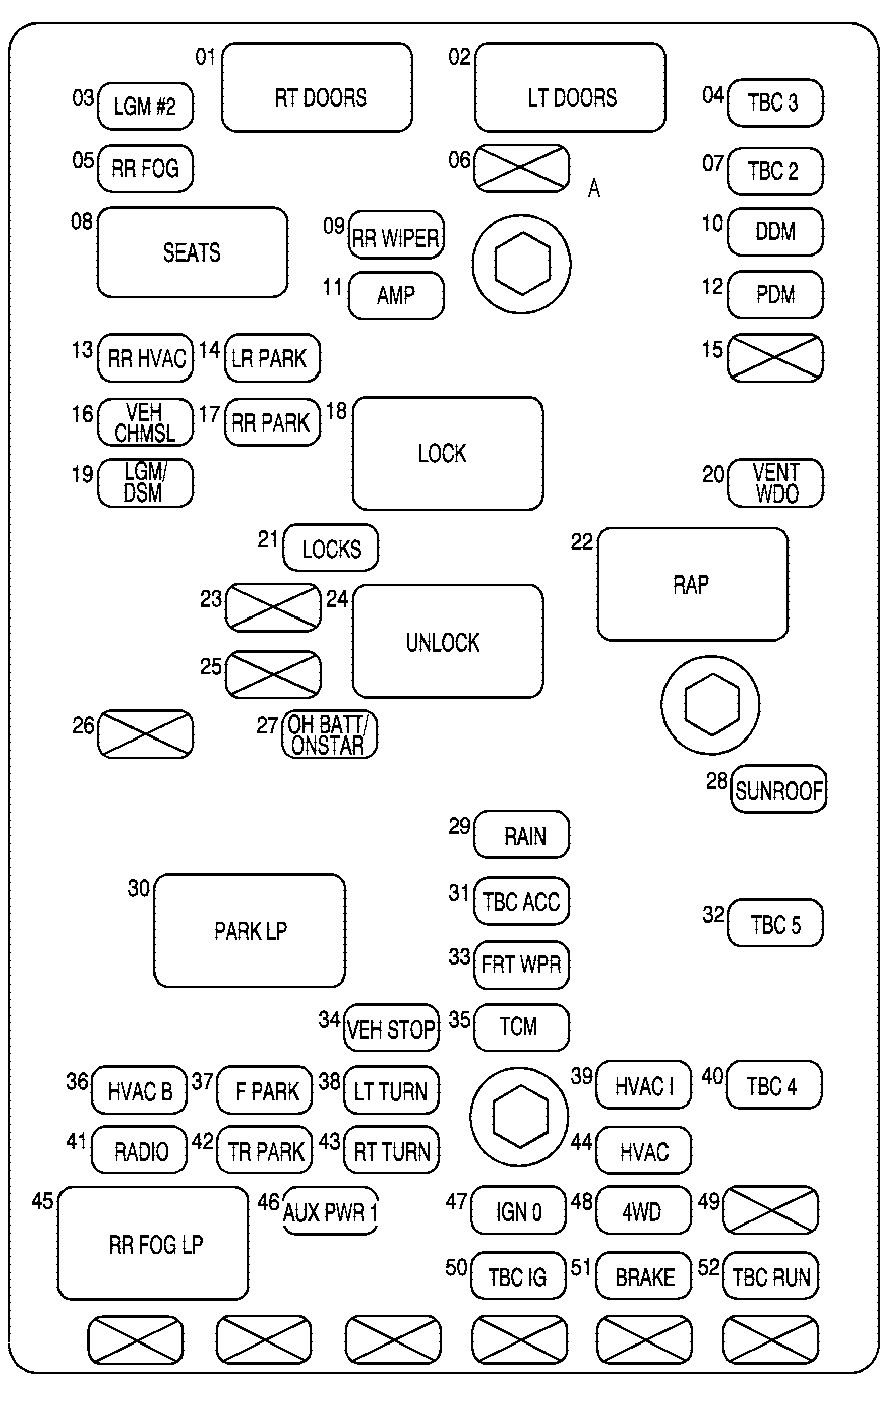 hight resolution of 2006 envoy fuse box diagram wiring diagram blog mix 2006 gmc envoy fuse box wiring diagram